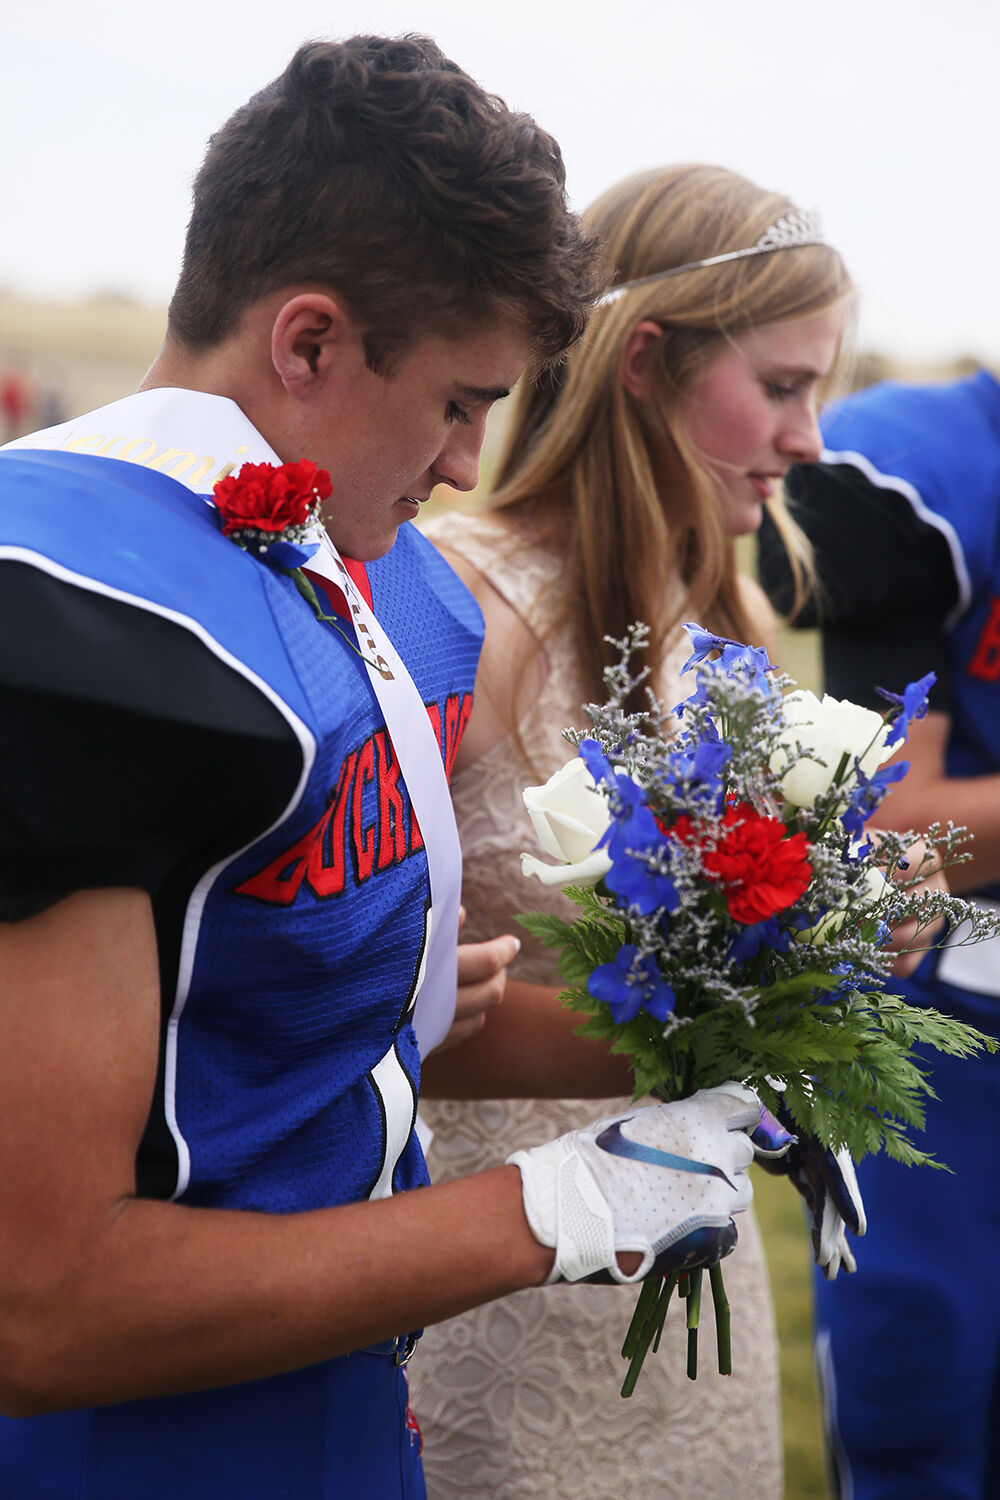 Dylan Fauber hold the flowers for queen Tinley Pierson